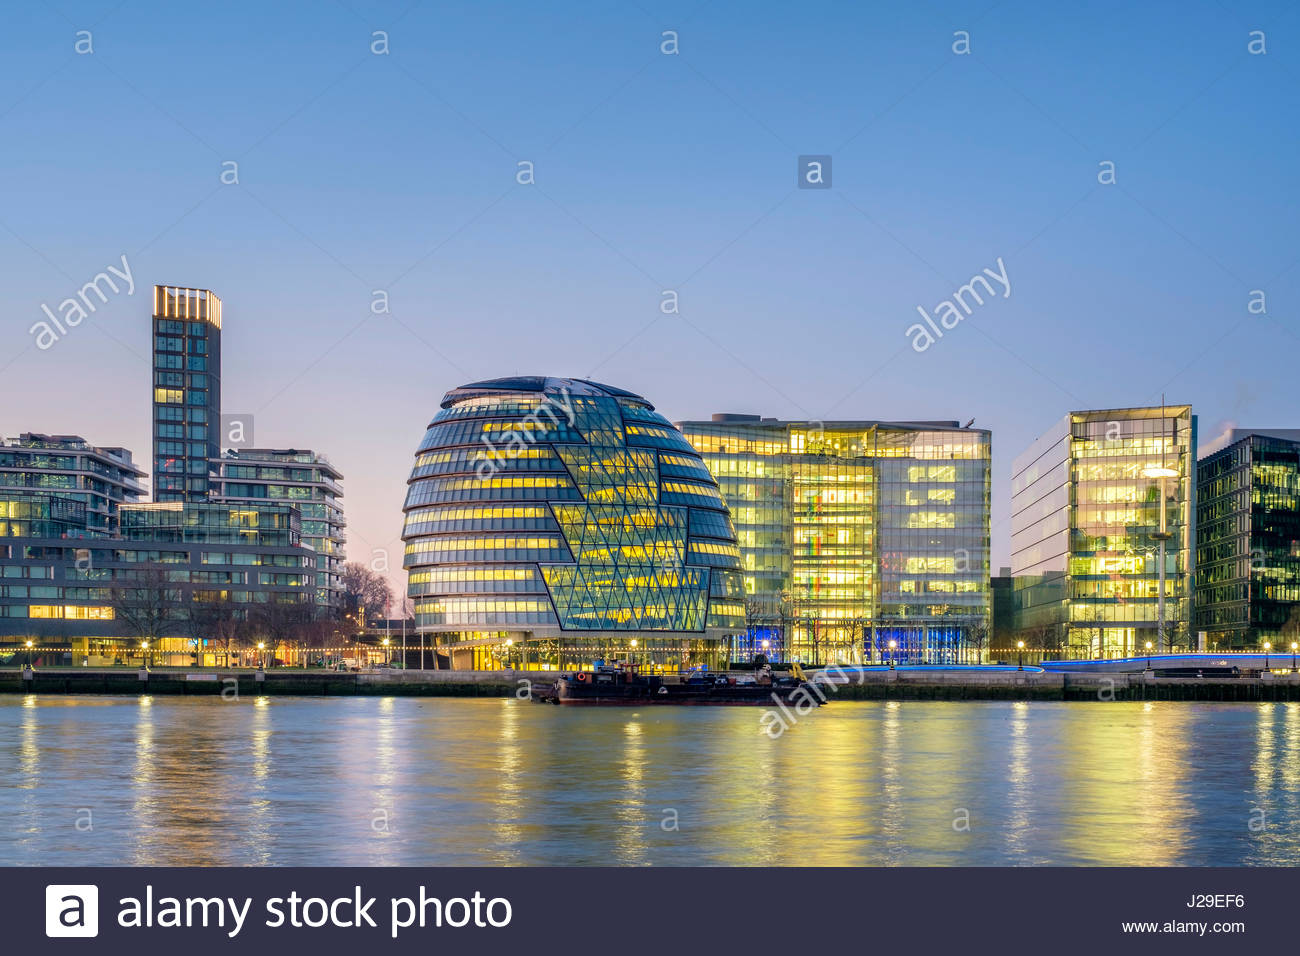 United Kingdom, England, London. London City Hall designed by architecht Norman Foster, and modern buildings in - Stock Image